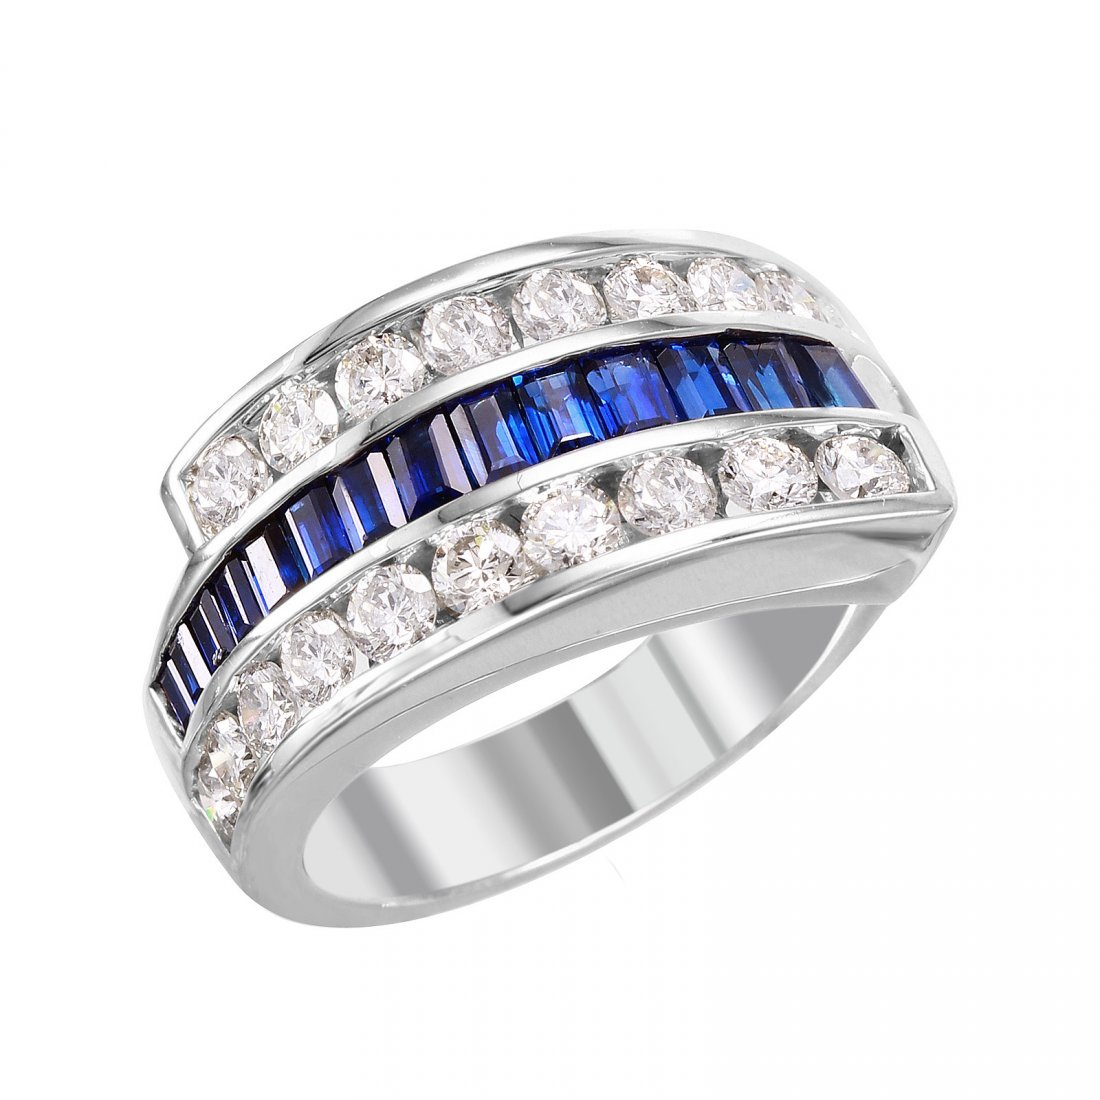 14KT White Gold Sapphire and Diamond Ring - #2042